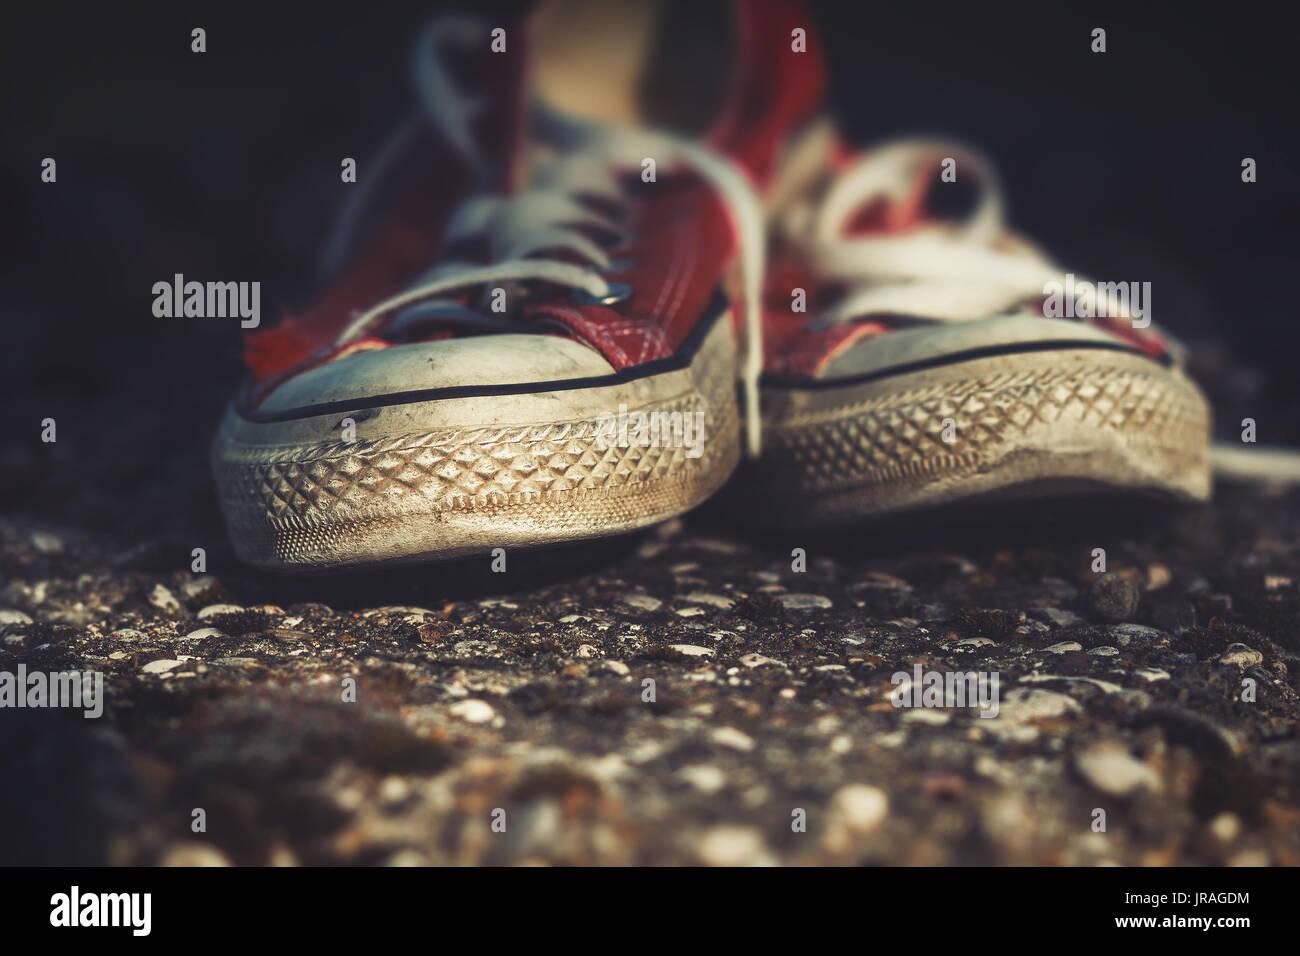 Old, worn out, red canvas sneakers on a concrete path - Stock Image